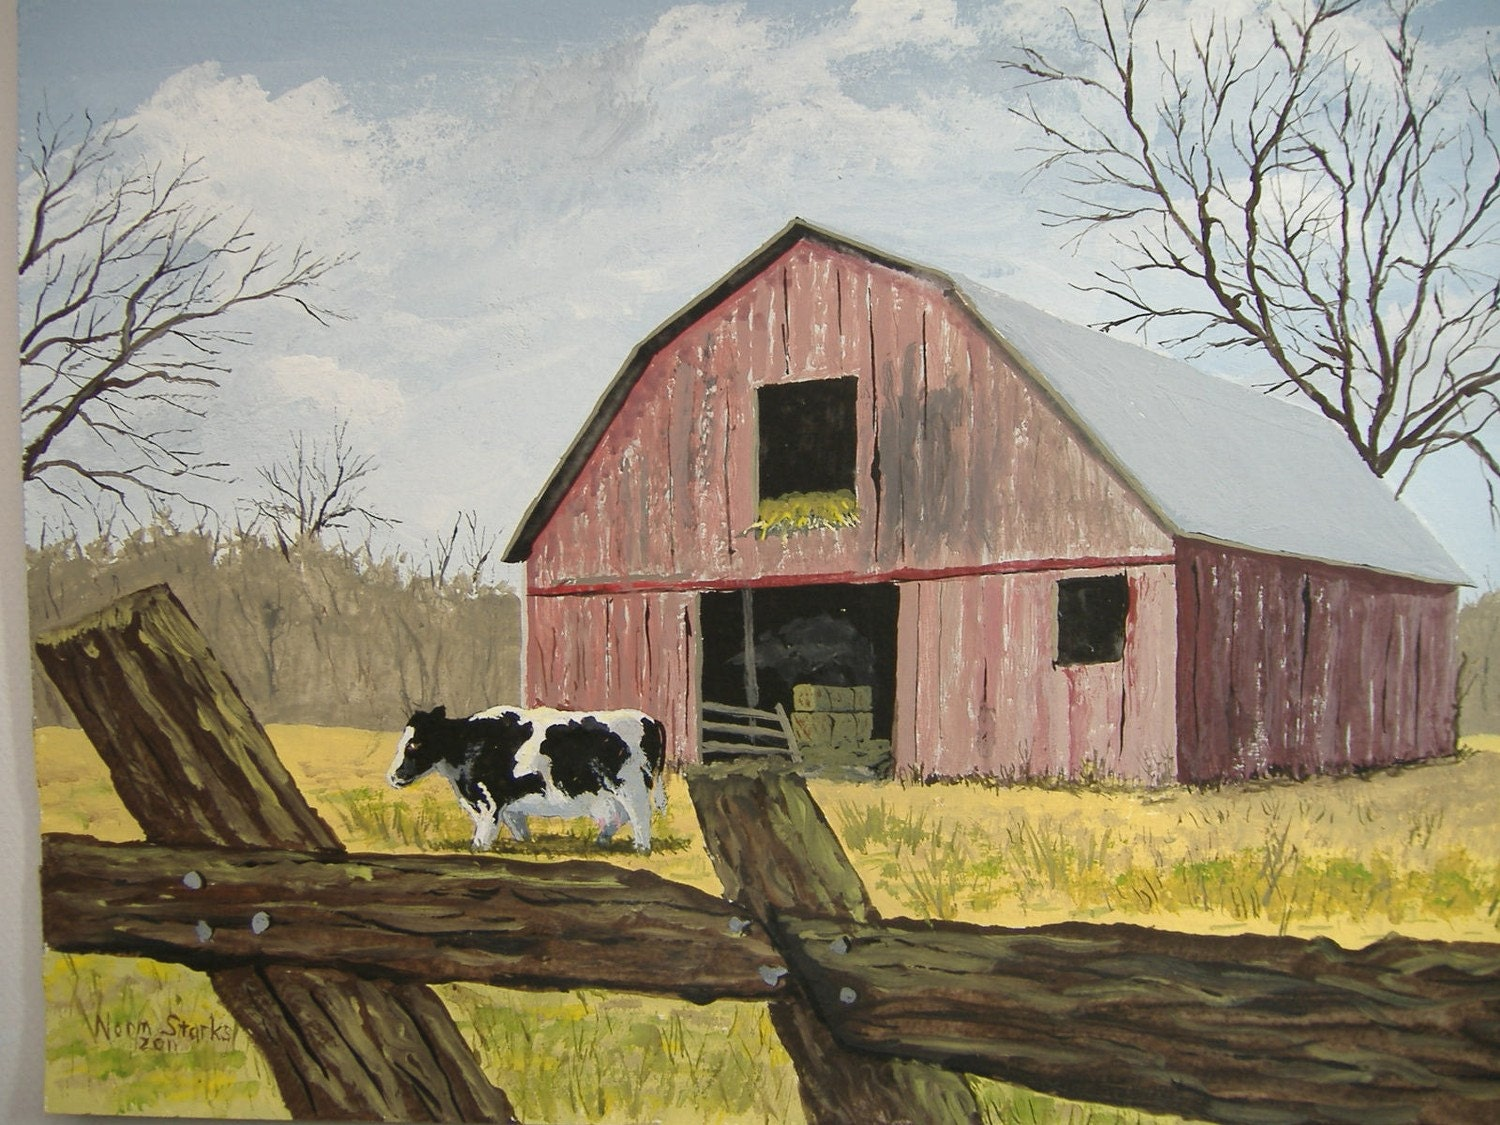 sketches from the cattle shed Get an answer for 'what is a summary of the story sketches from the 'cattle shed' by ding ling' and find homework help for other literature questions at enotes.